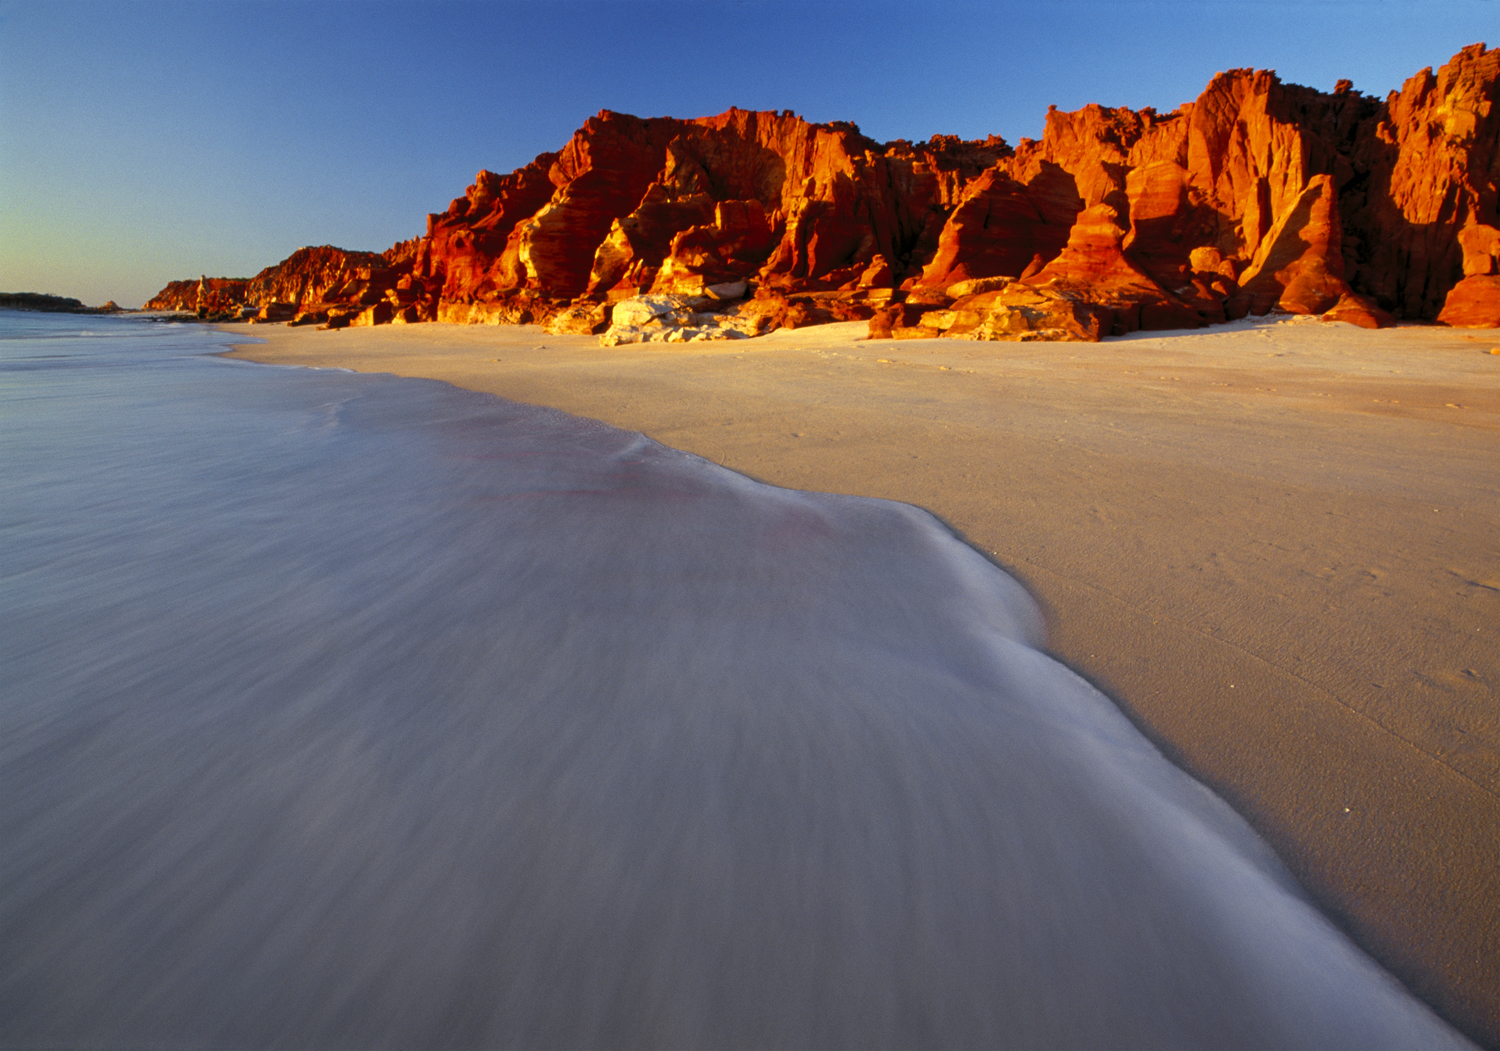 Red cliffs in Broome, Australia